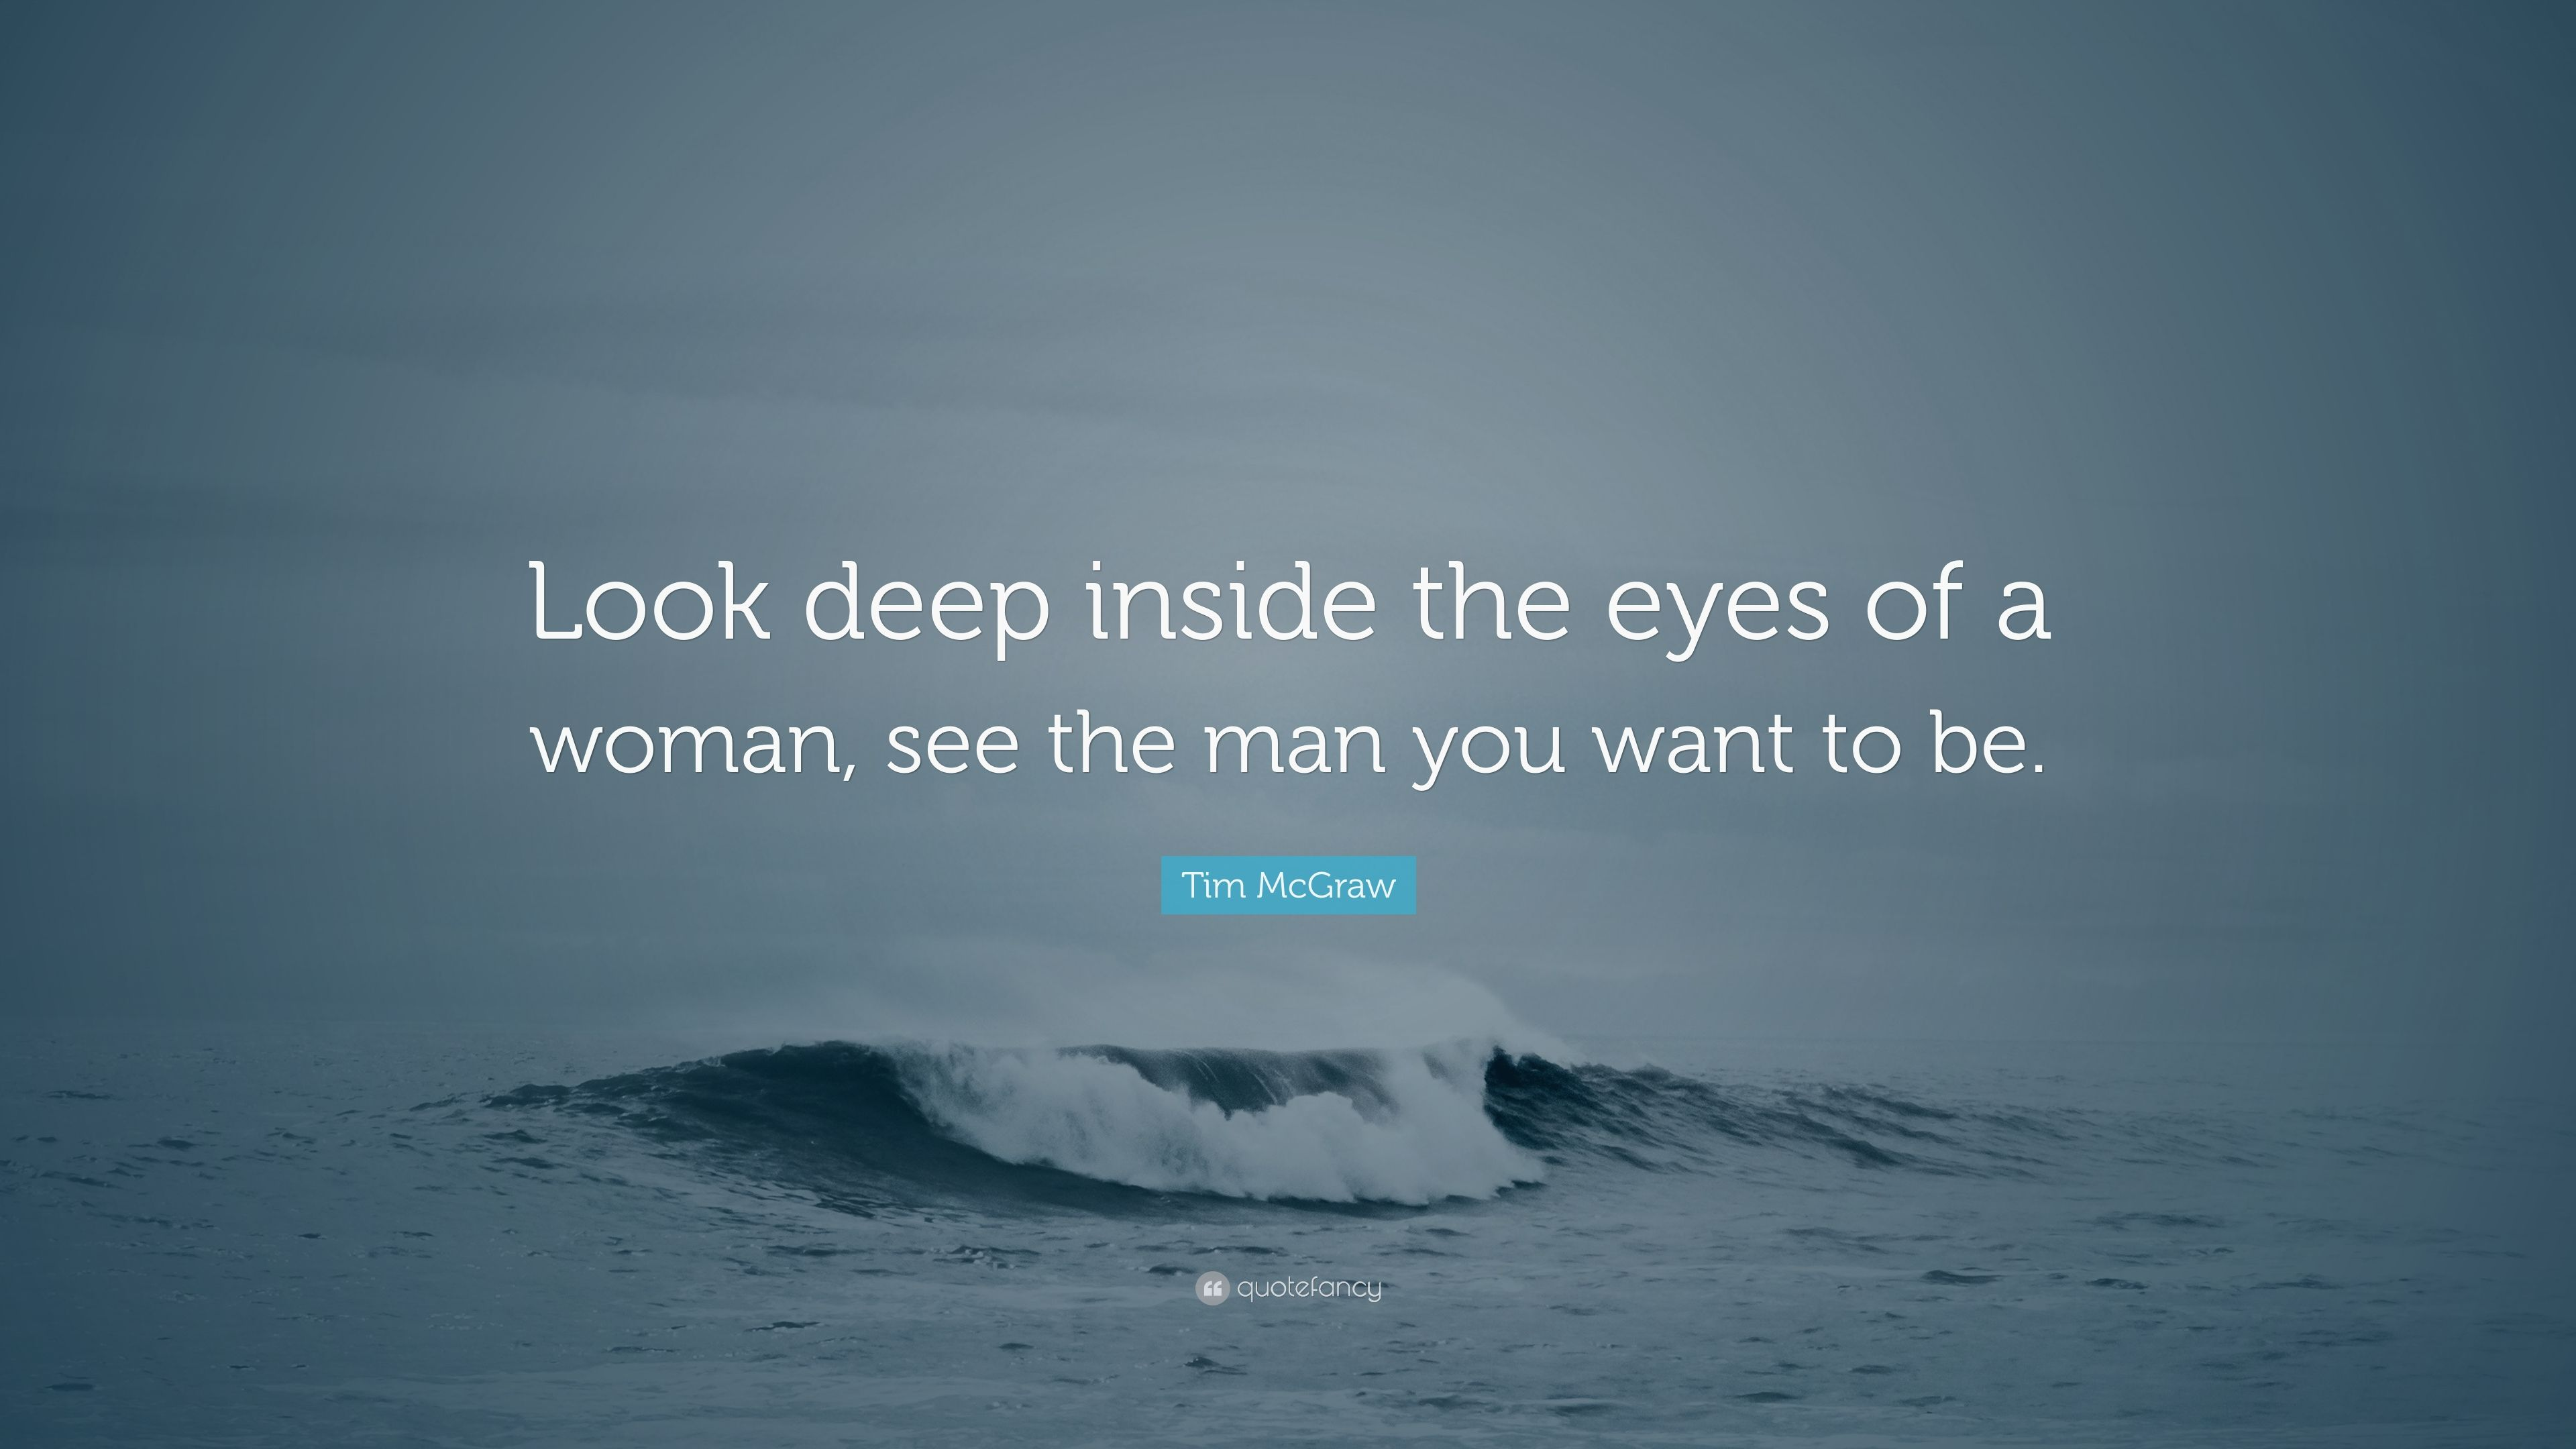 Deep Eyes Quotes Facebook